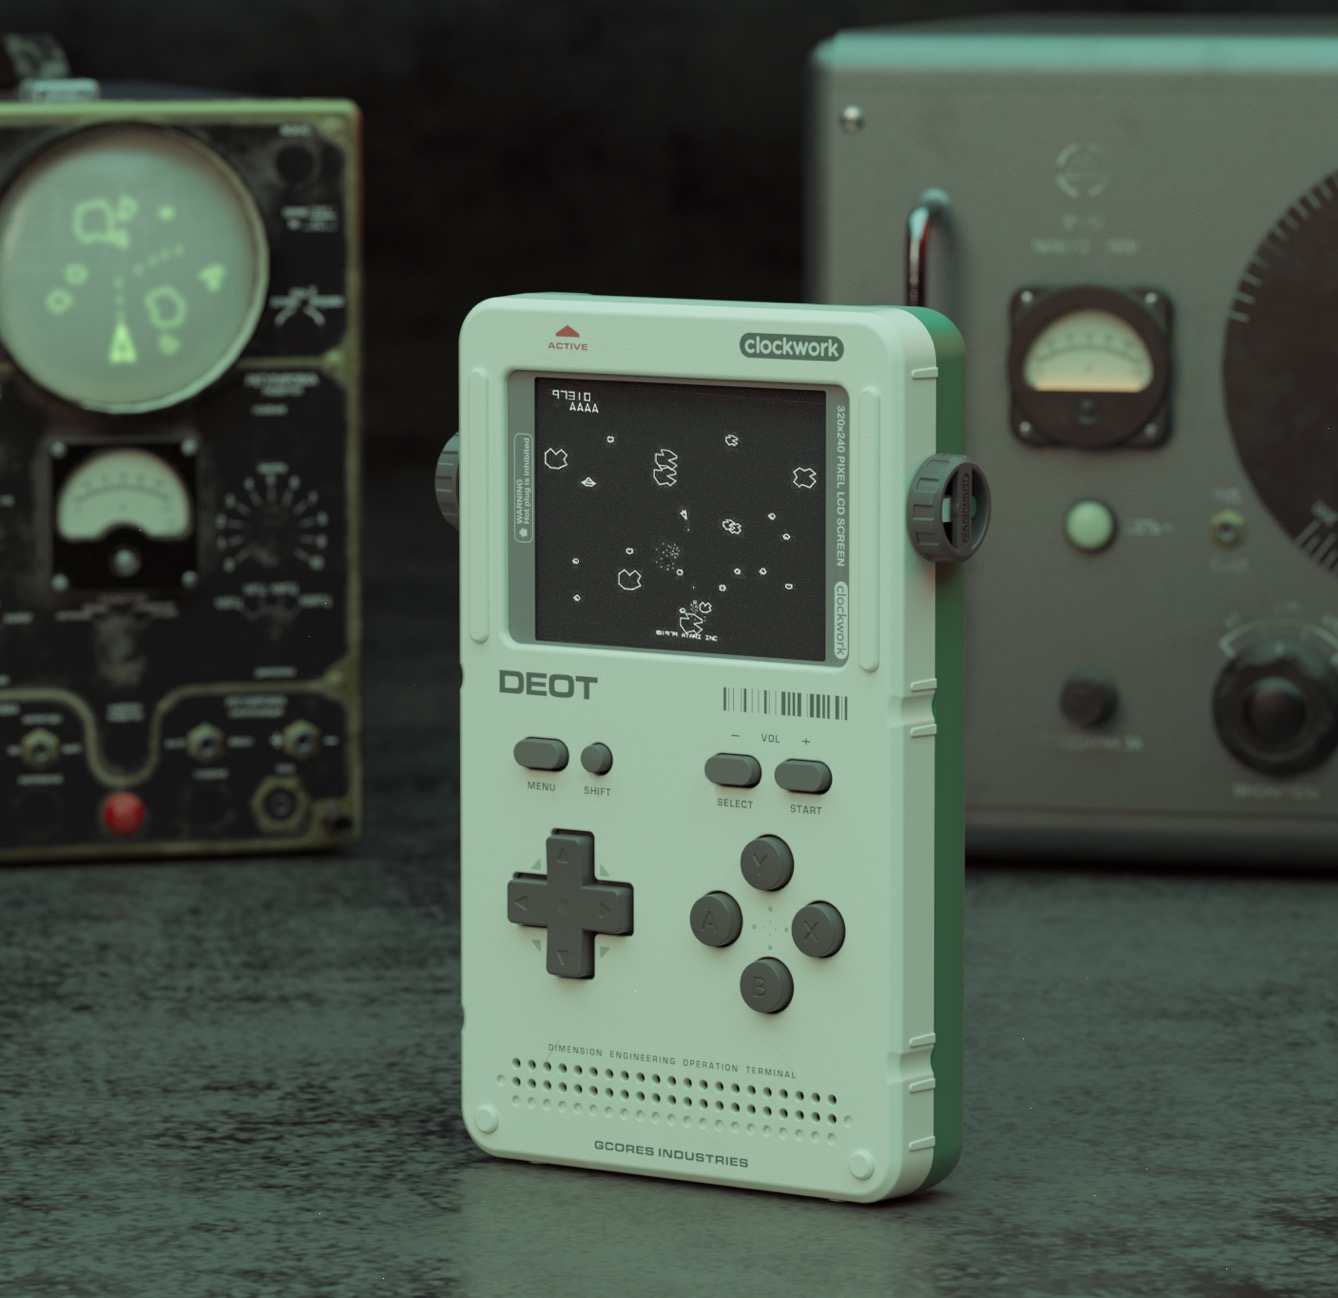 GameShell (an open source portable game console) 3D model is